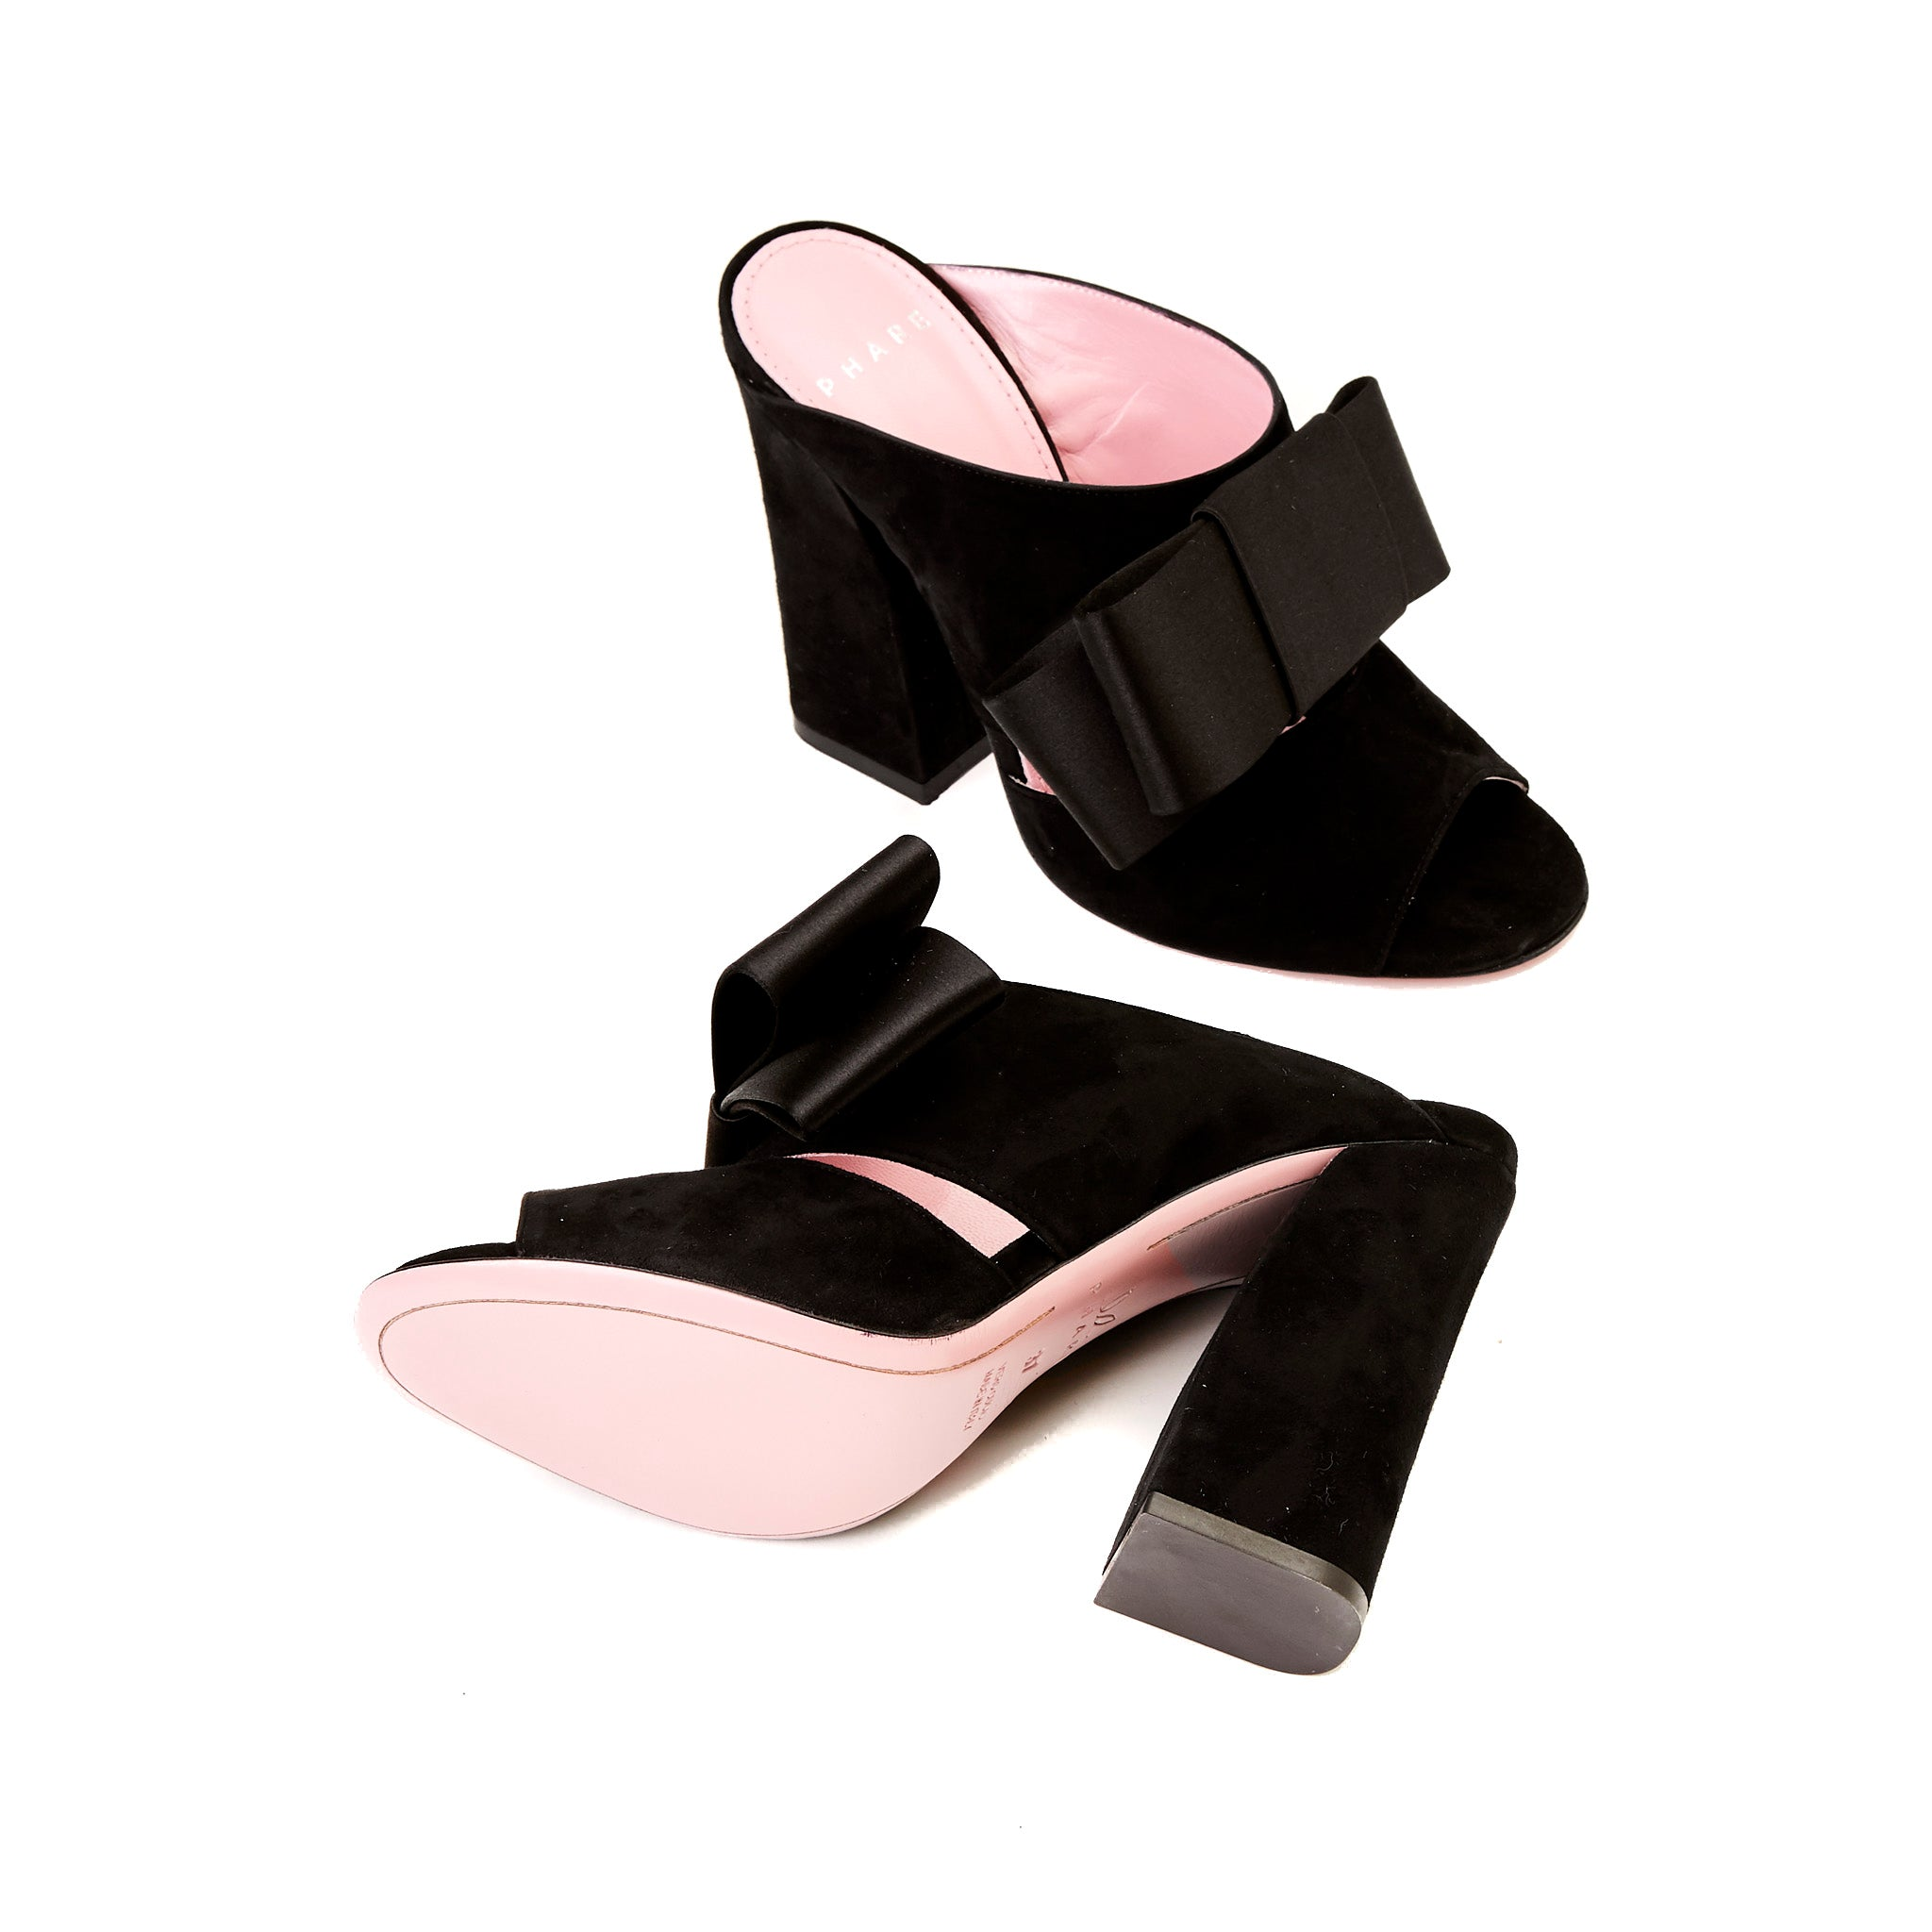 Phare High heel block heel mule with bow in black suede and satin back view